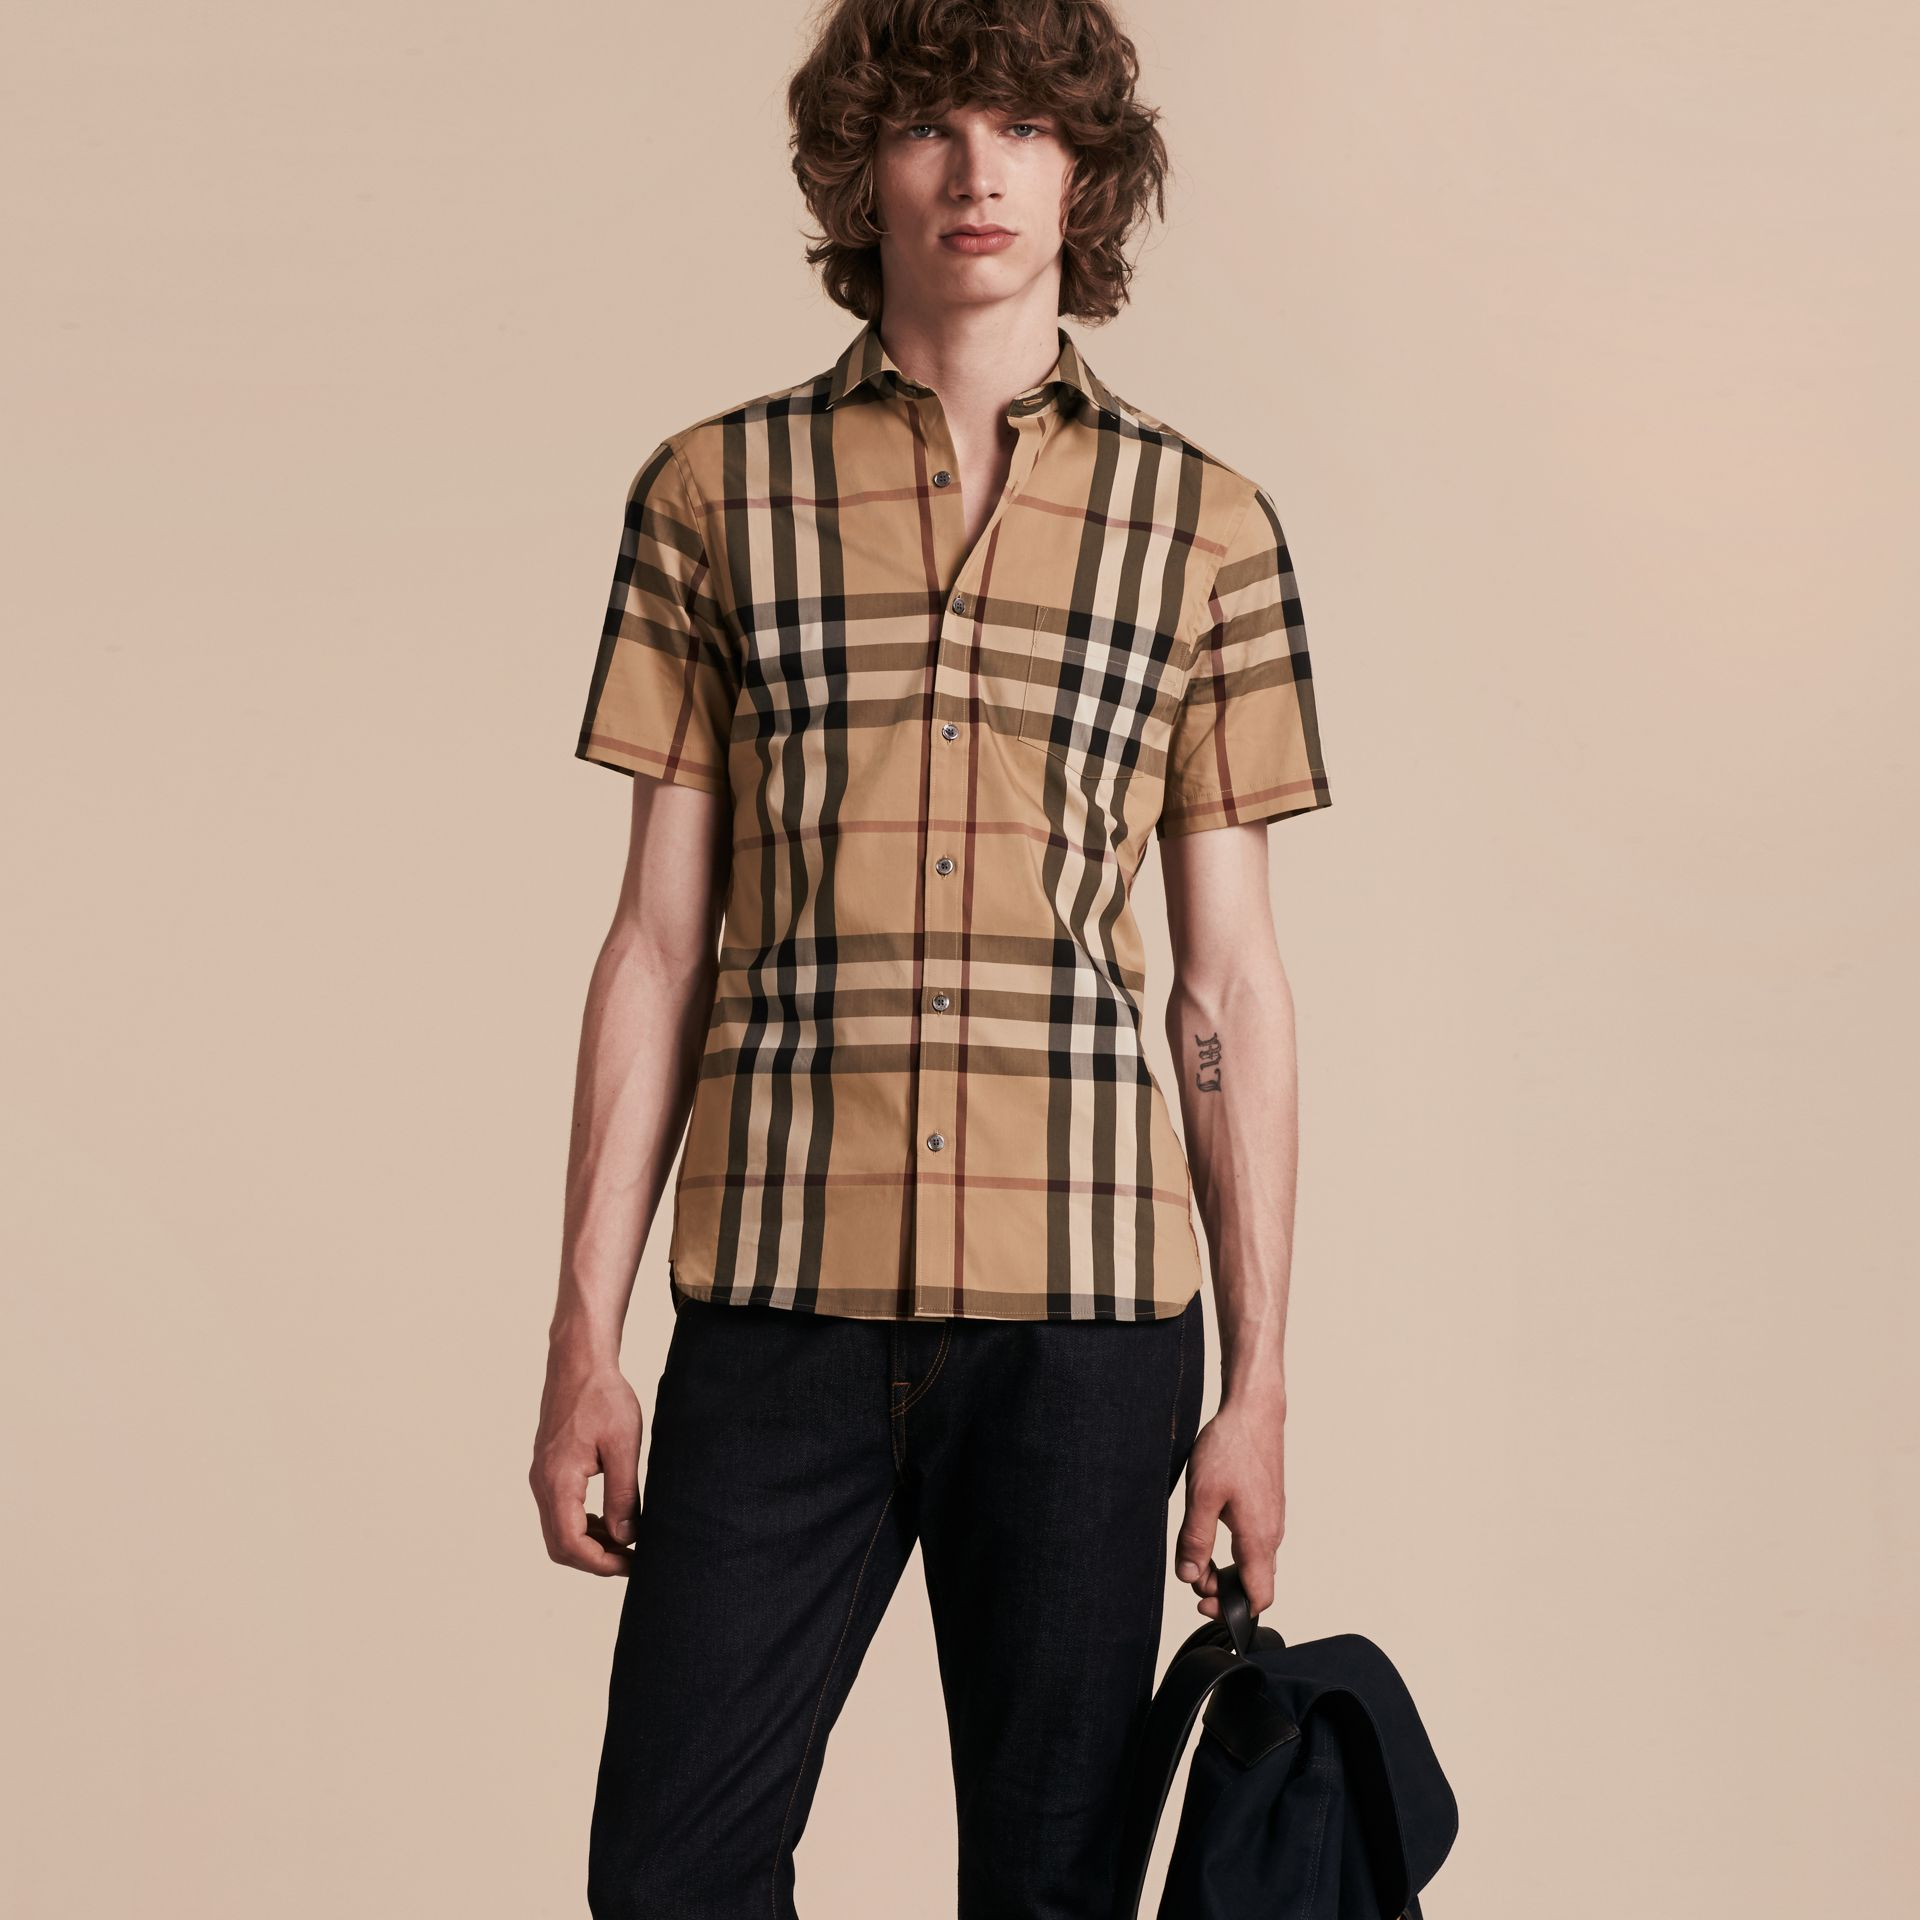 Camel Short-sleeved Check Stretch Cotton Shirt Camel - gallery image 6